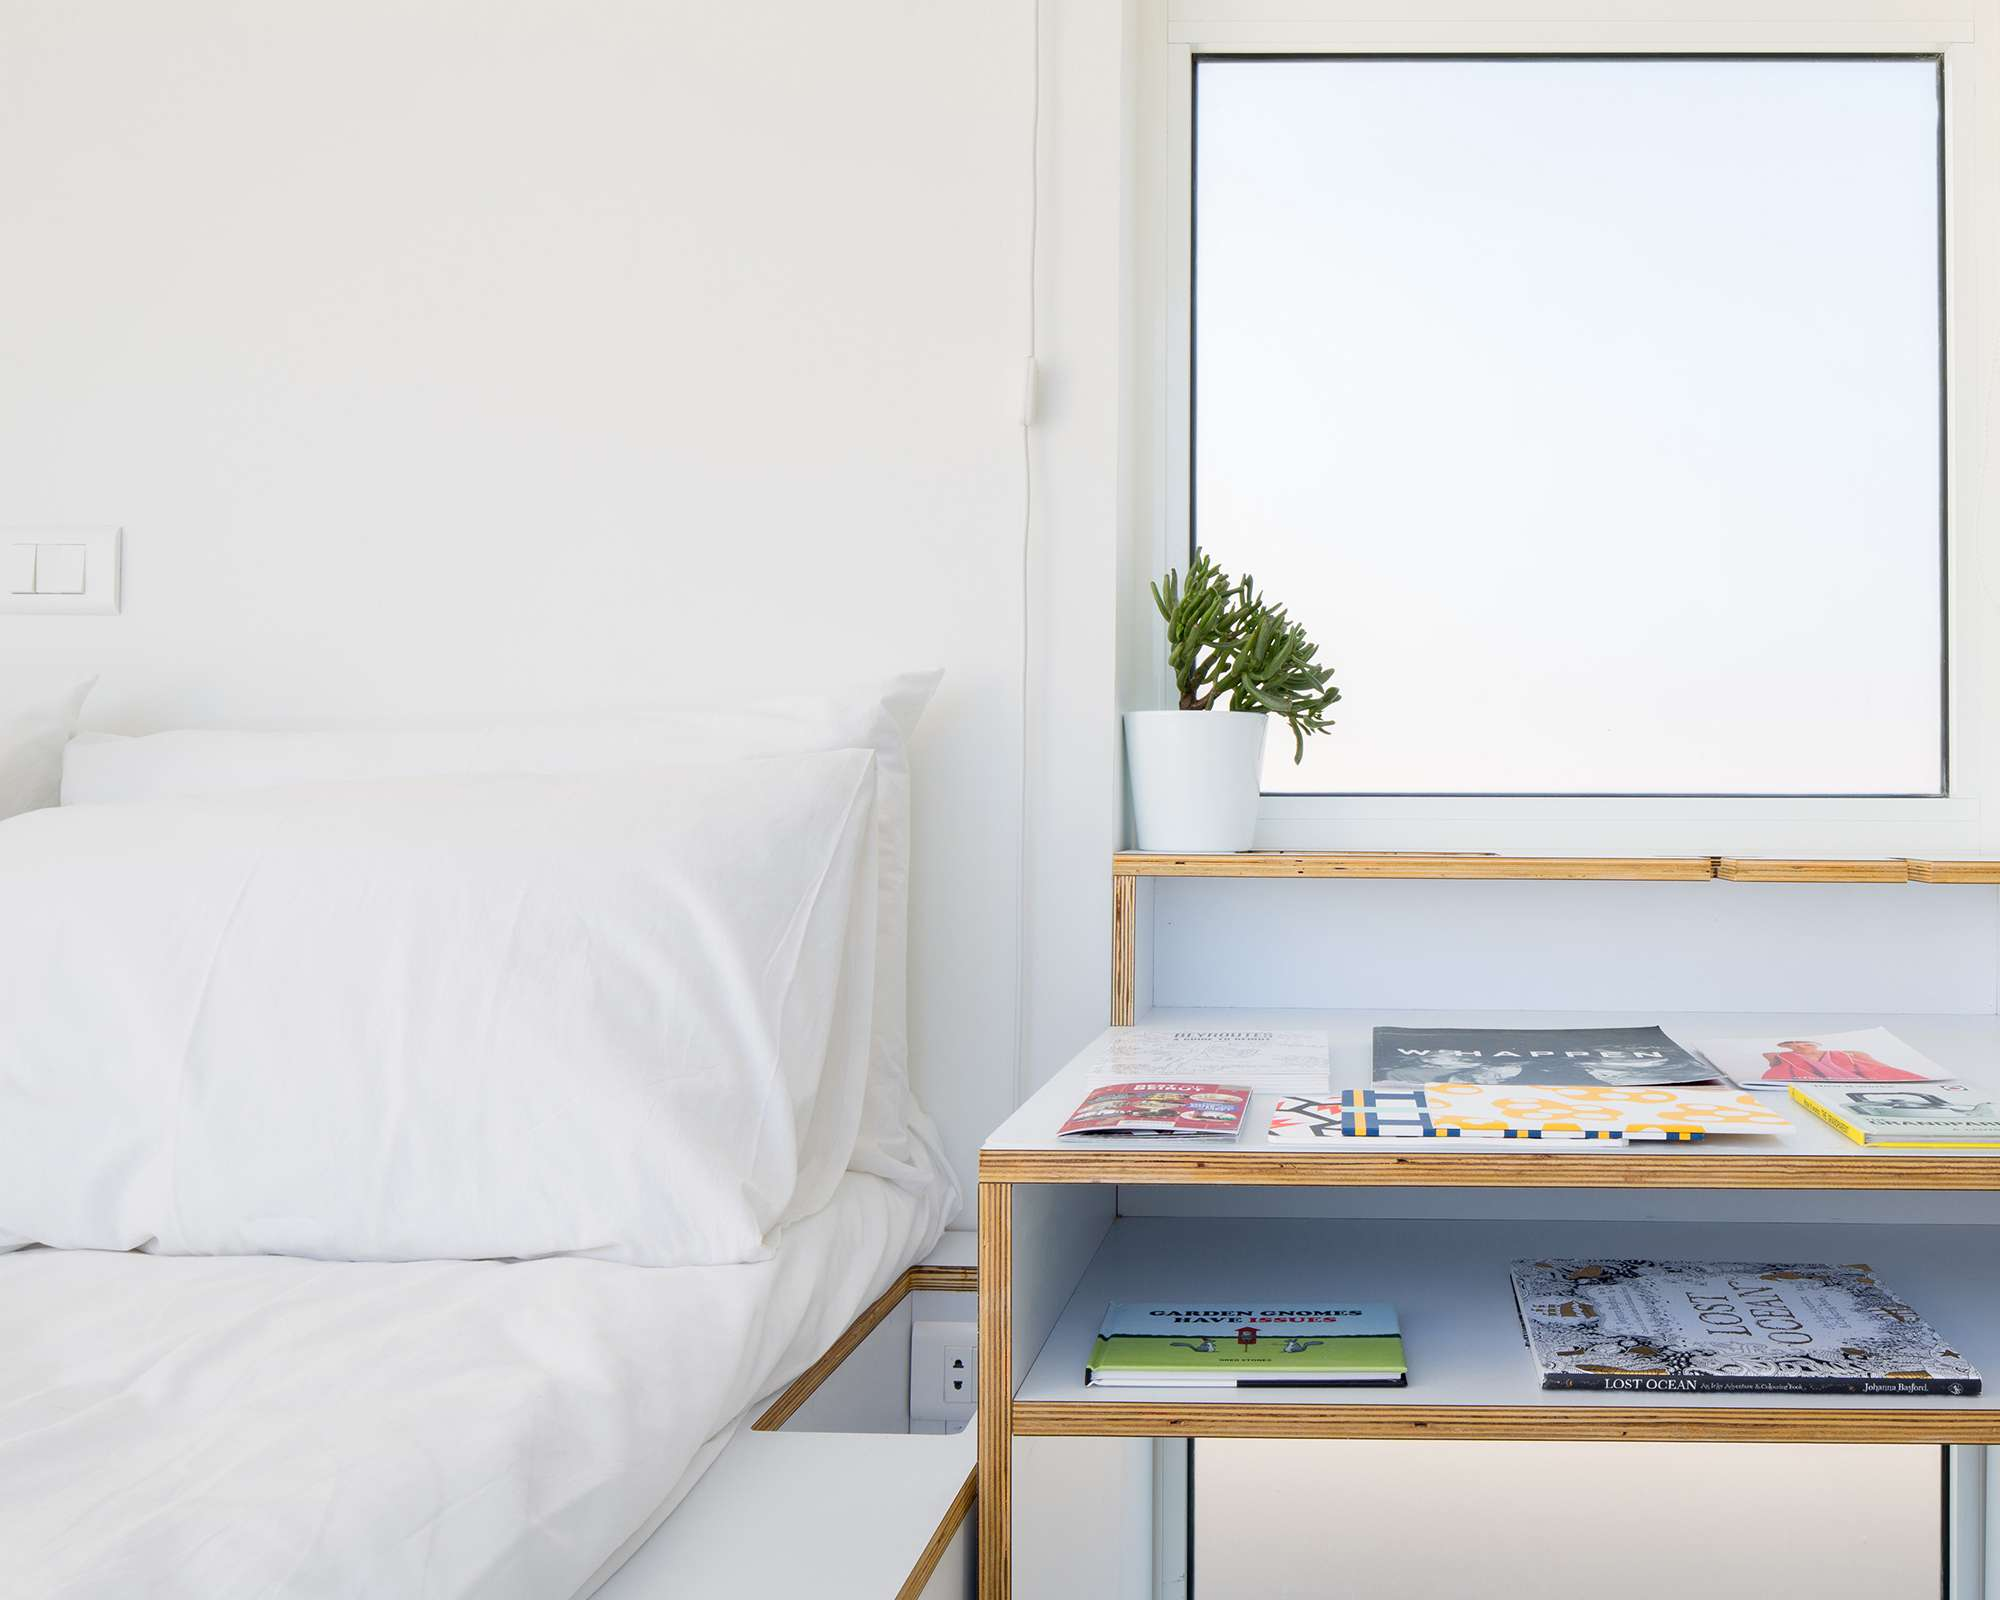 The Shoebox micro-apartment by Elie Metni bed